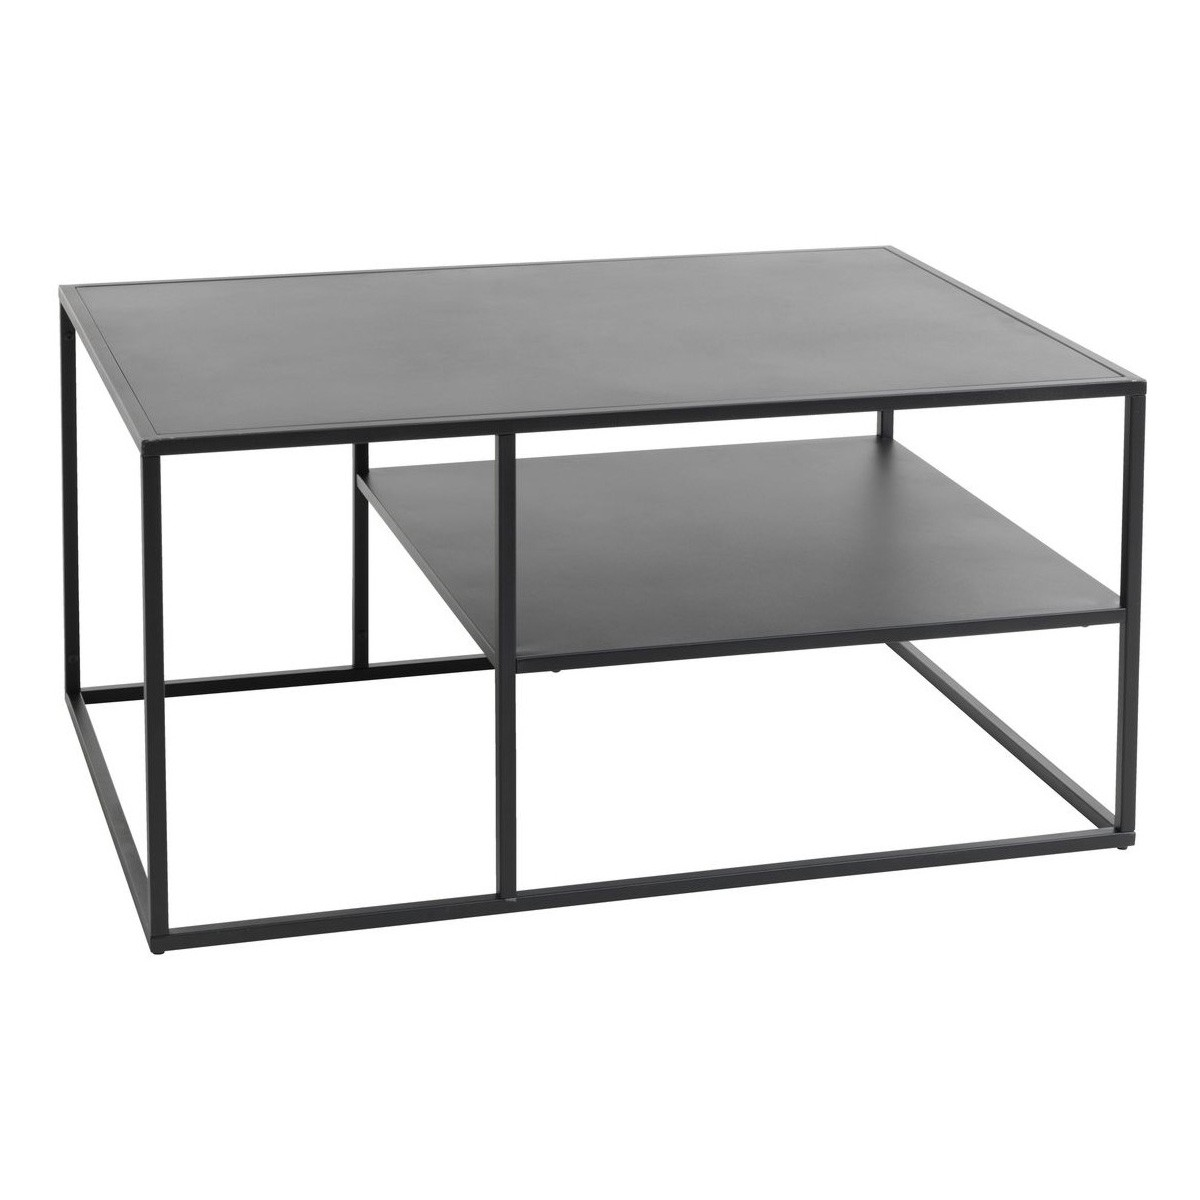 Williamson Stainless Steel Coffee Table, 90cm